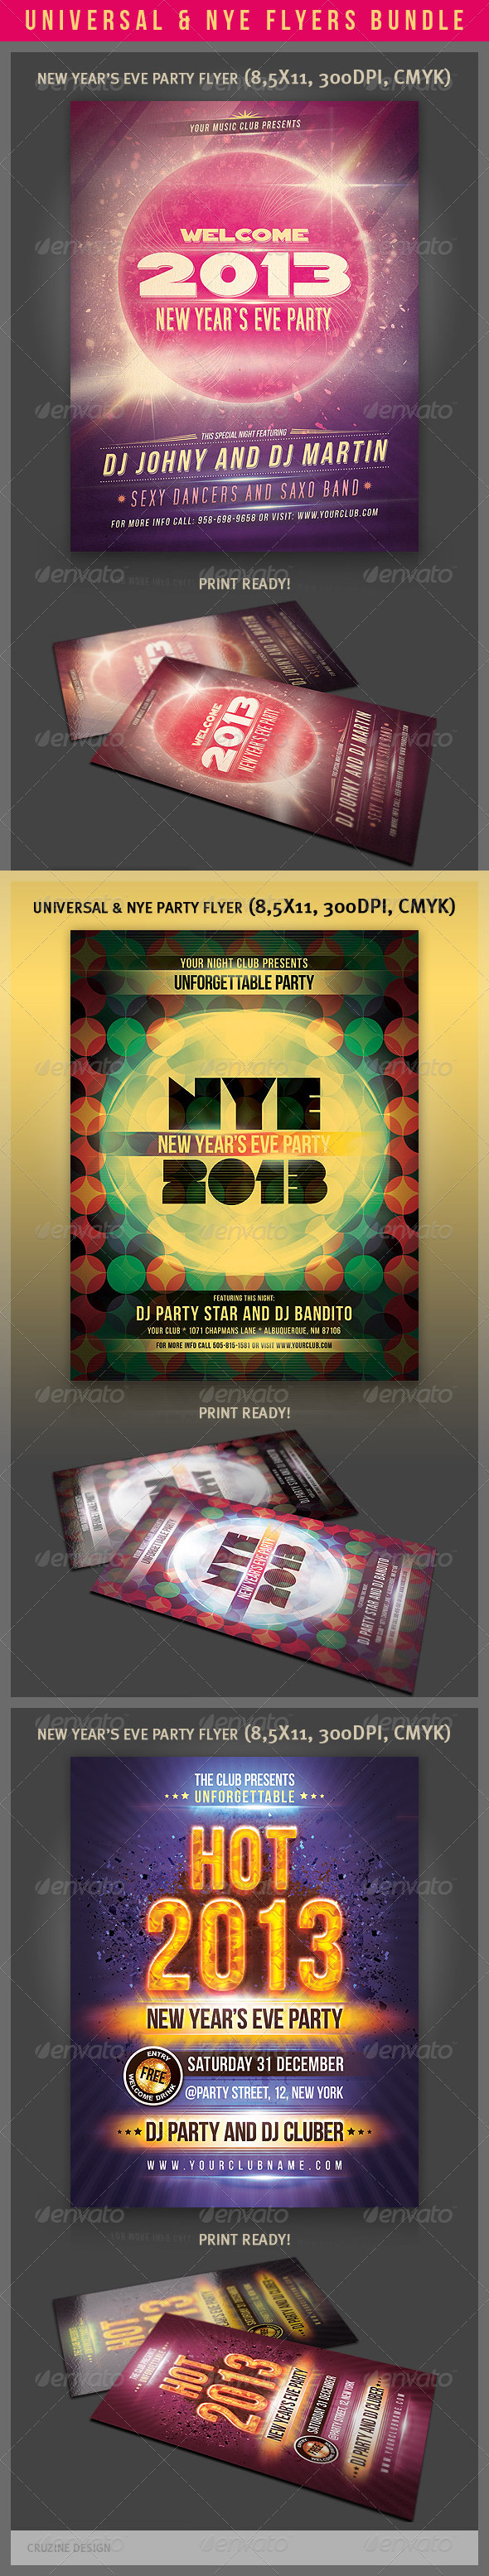 GraphicRiver Universal & NYE Party Flyers Bundle 3567771